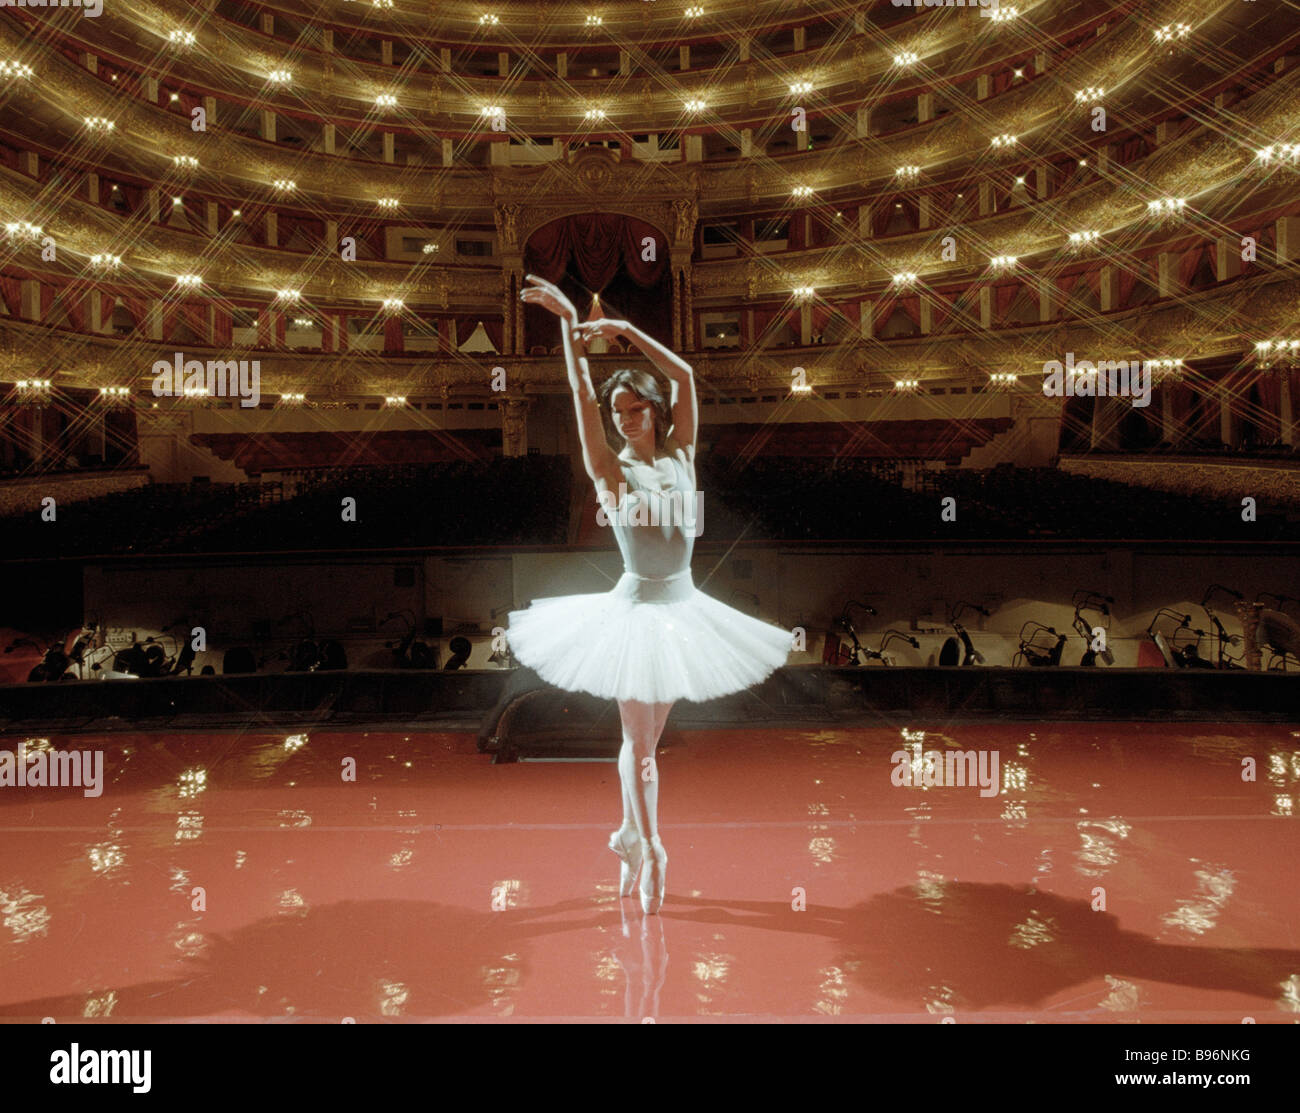 A dancer rehearsing on the Bolshoi stage - Stock Image